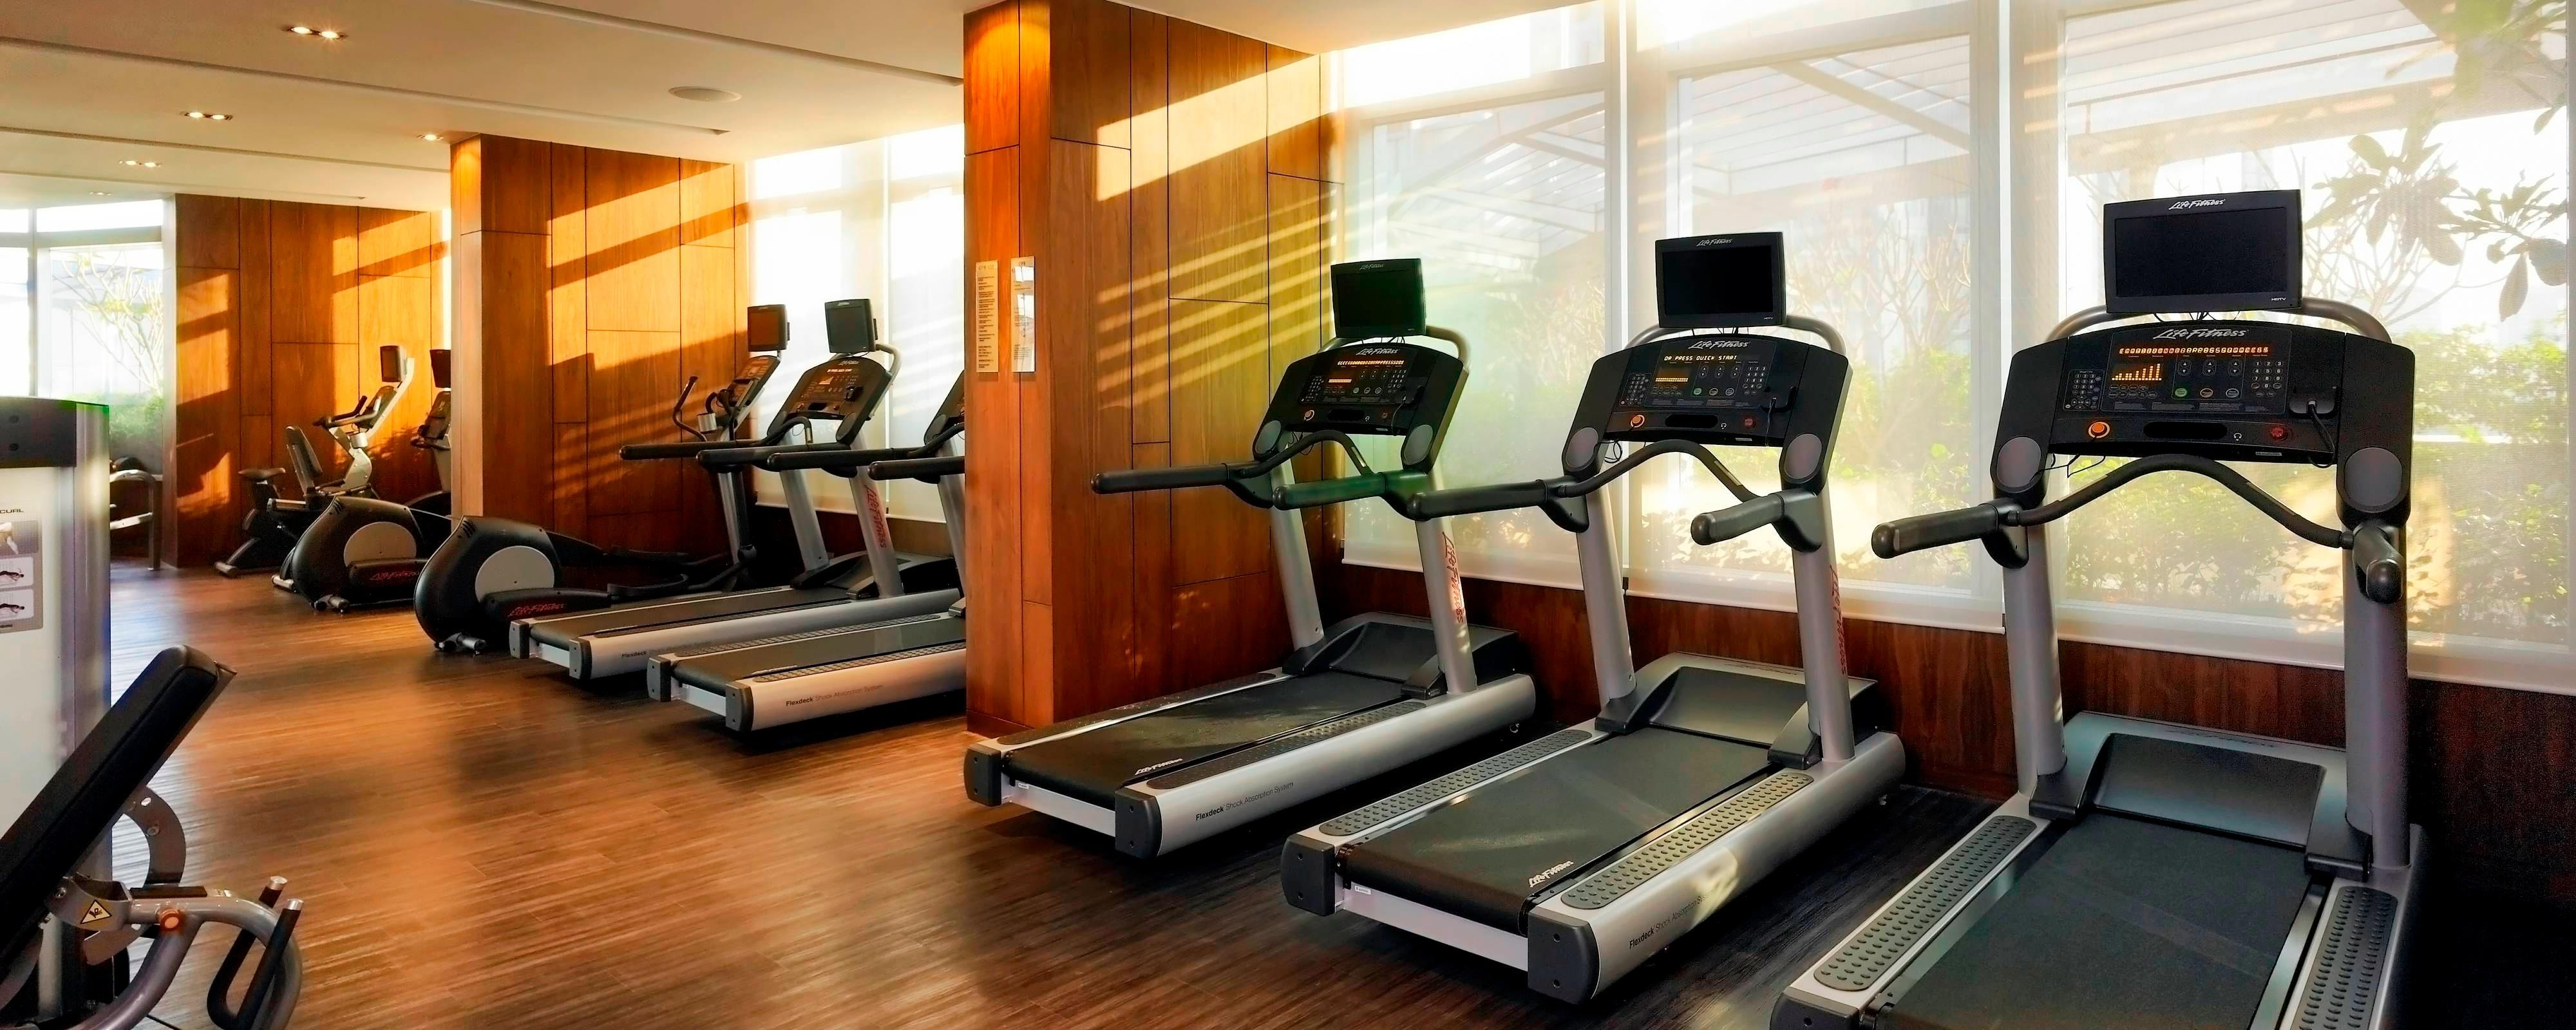 Hotel Gym In Bangkok - Recreation Activities At The Marriott